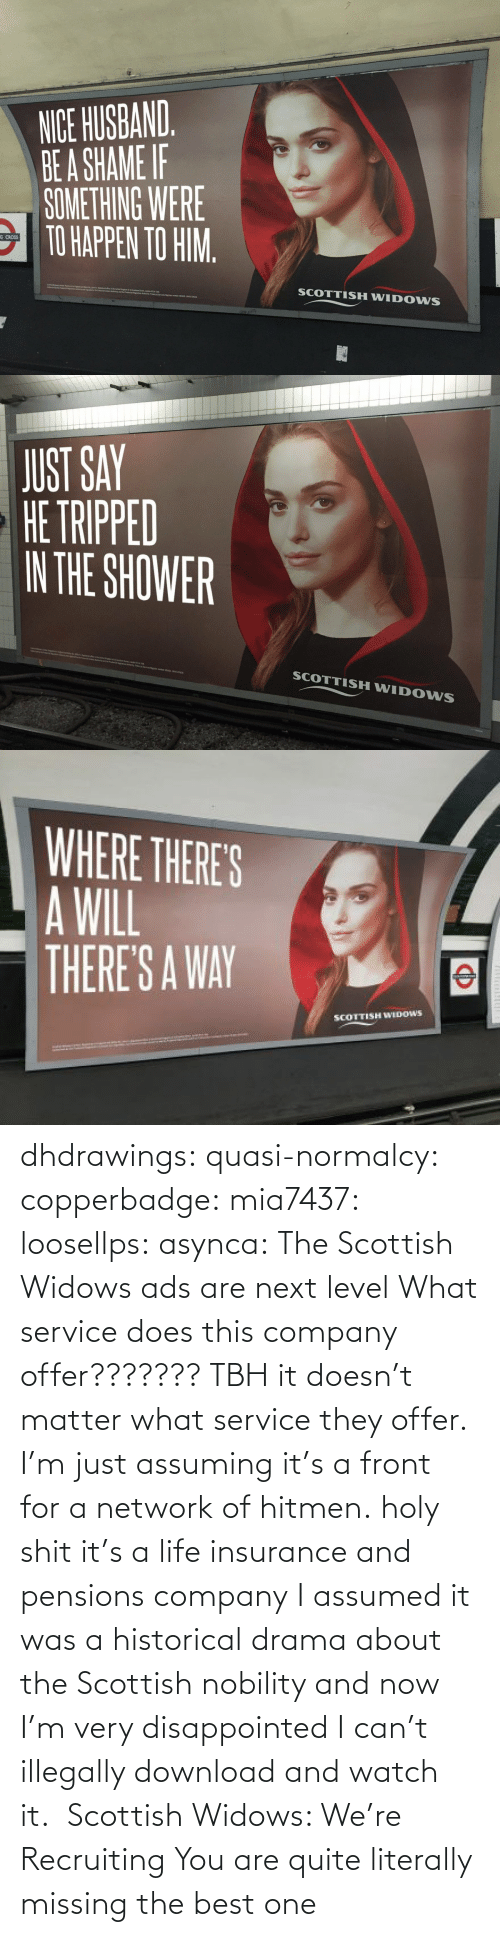 Matter What: dhdrawings:  quasi-normalcy:  copperbadge:  mia7437:  loosellps:  asynca: The Scottish Widows ads are next level What service does this company offer??????? TBH it doesn't matter what service they offer. I'm just assuming it's a front for a network of hitmen.  holy shit it's a life insurance and pensions company  I assumed it was a historical drama about the Scottish nobility and now I'm very disappointed I can't illegally download and watch it.     Scottish Widows: We're Recruiting    You are quite literally missing the best one